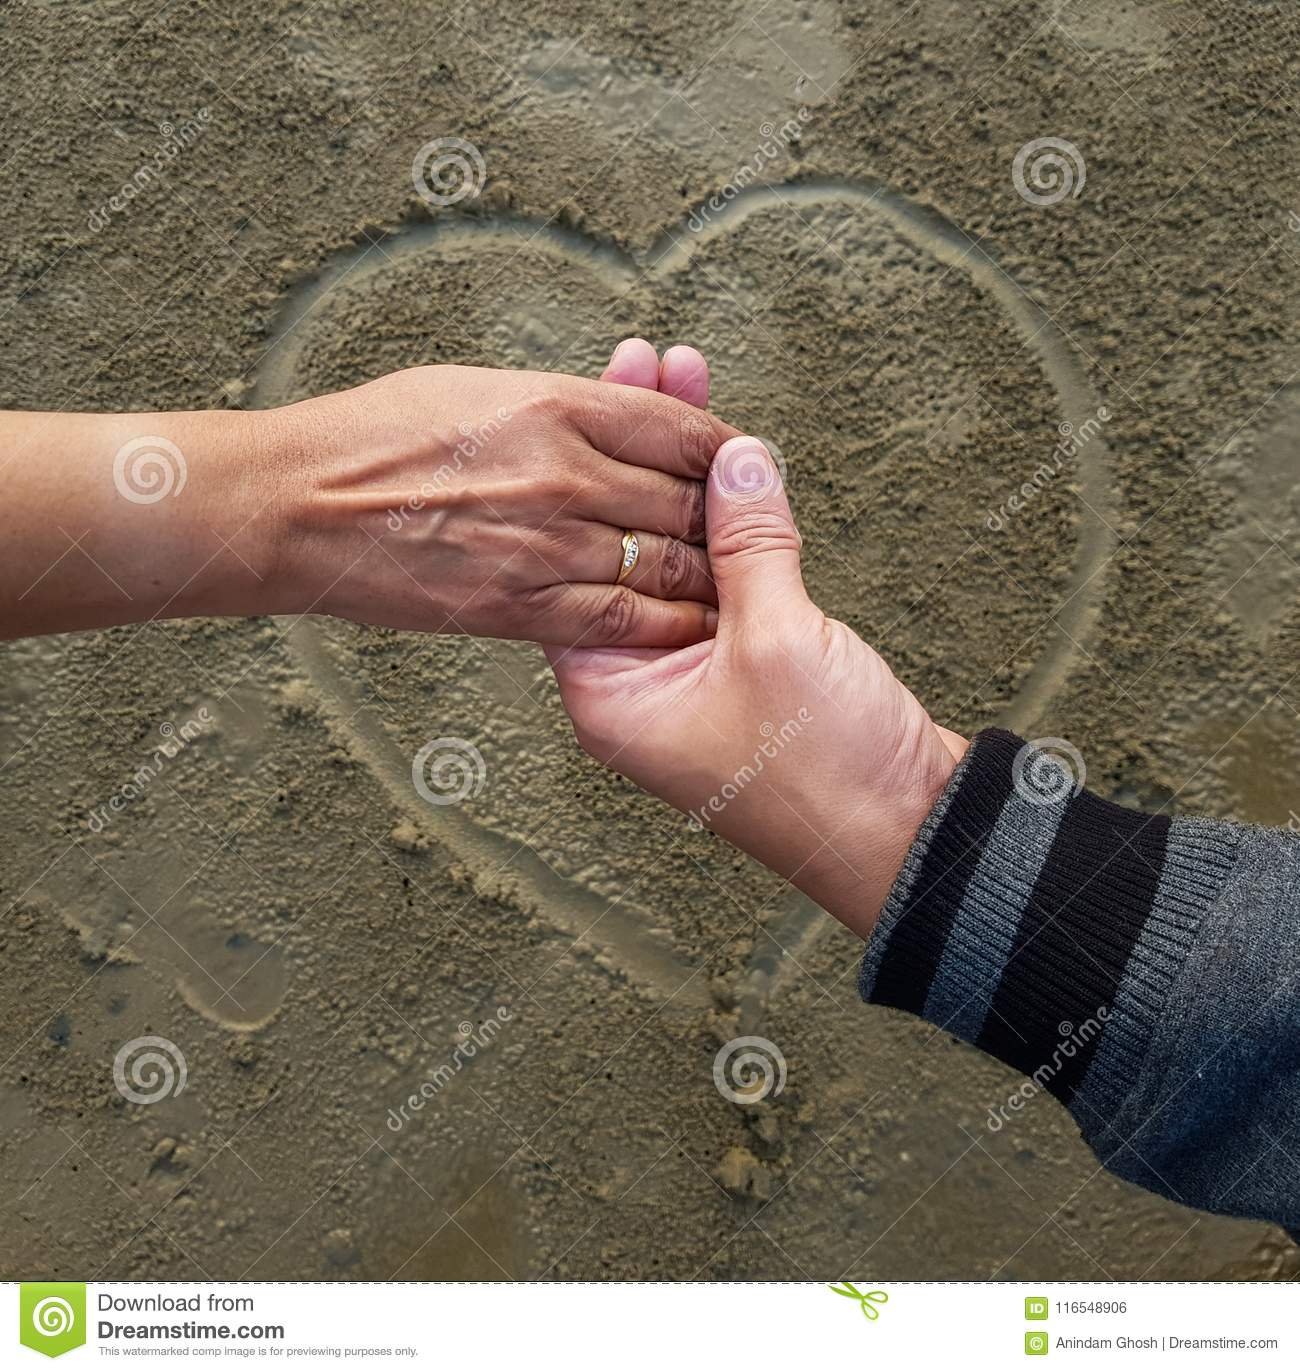 Christian dating hand holding